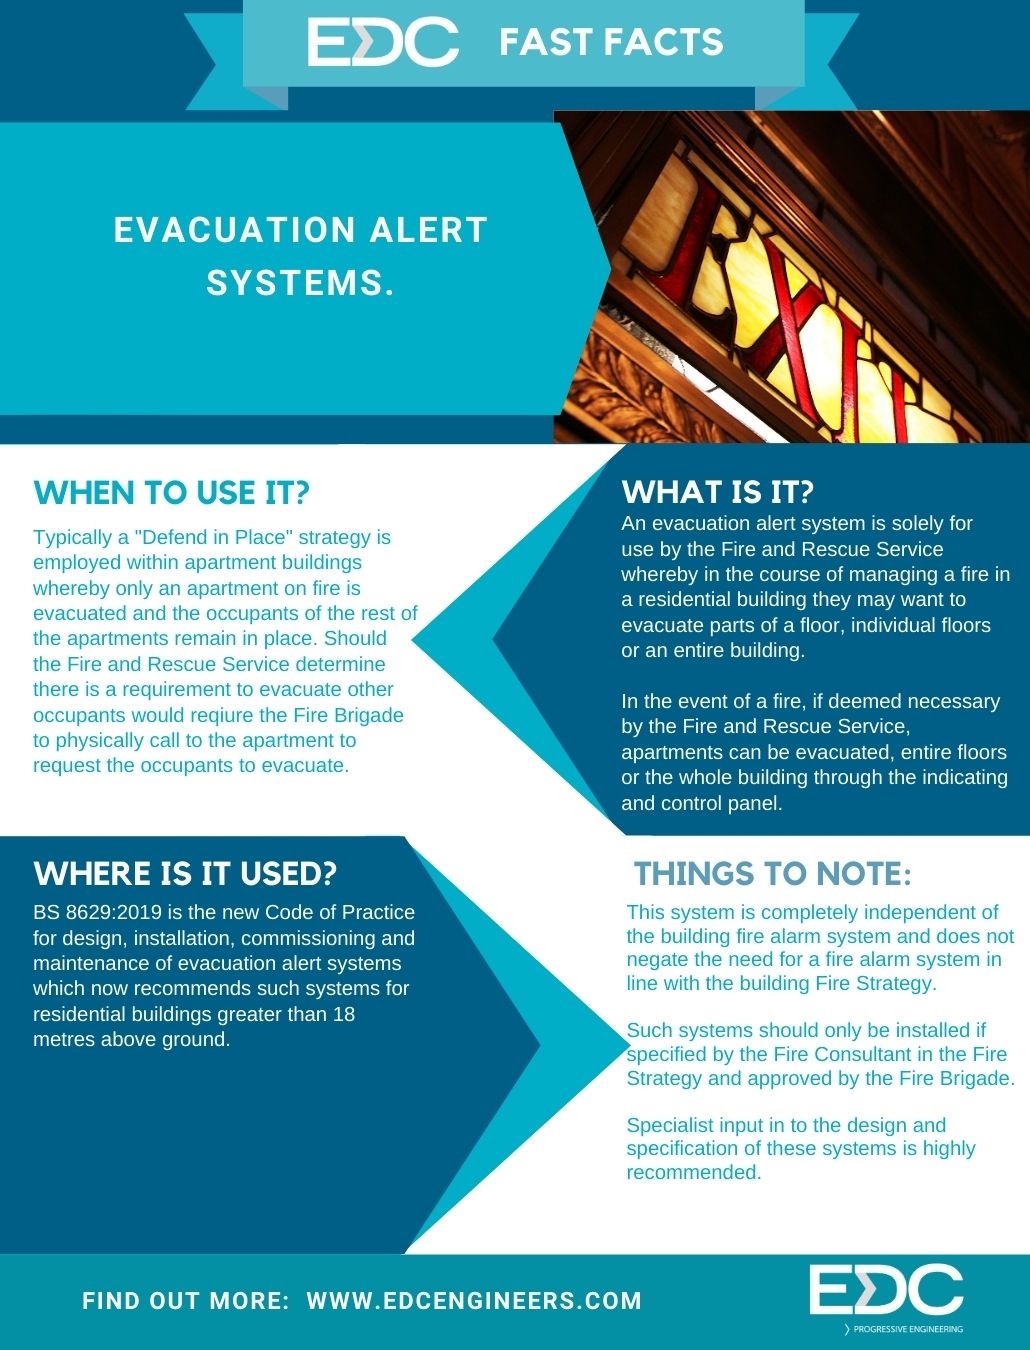 EDC Fast Facts 14 Evacuation Alert Systems